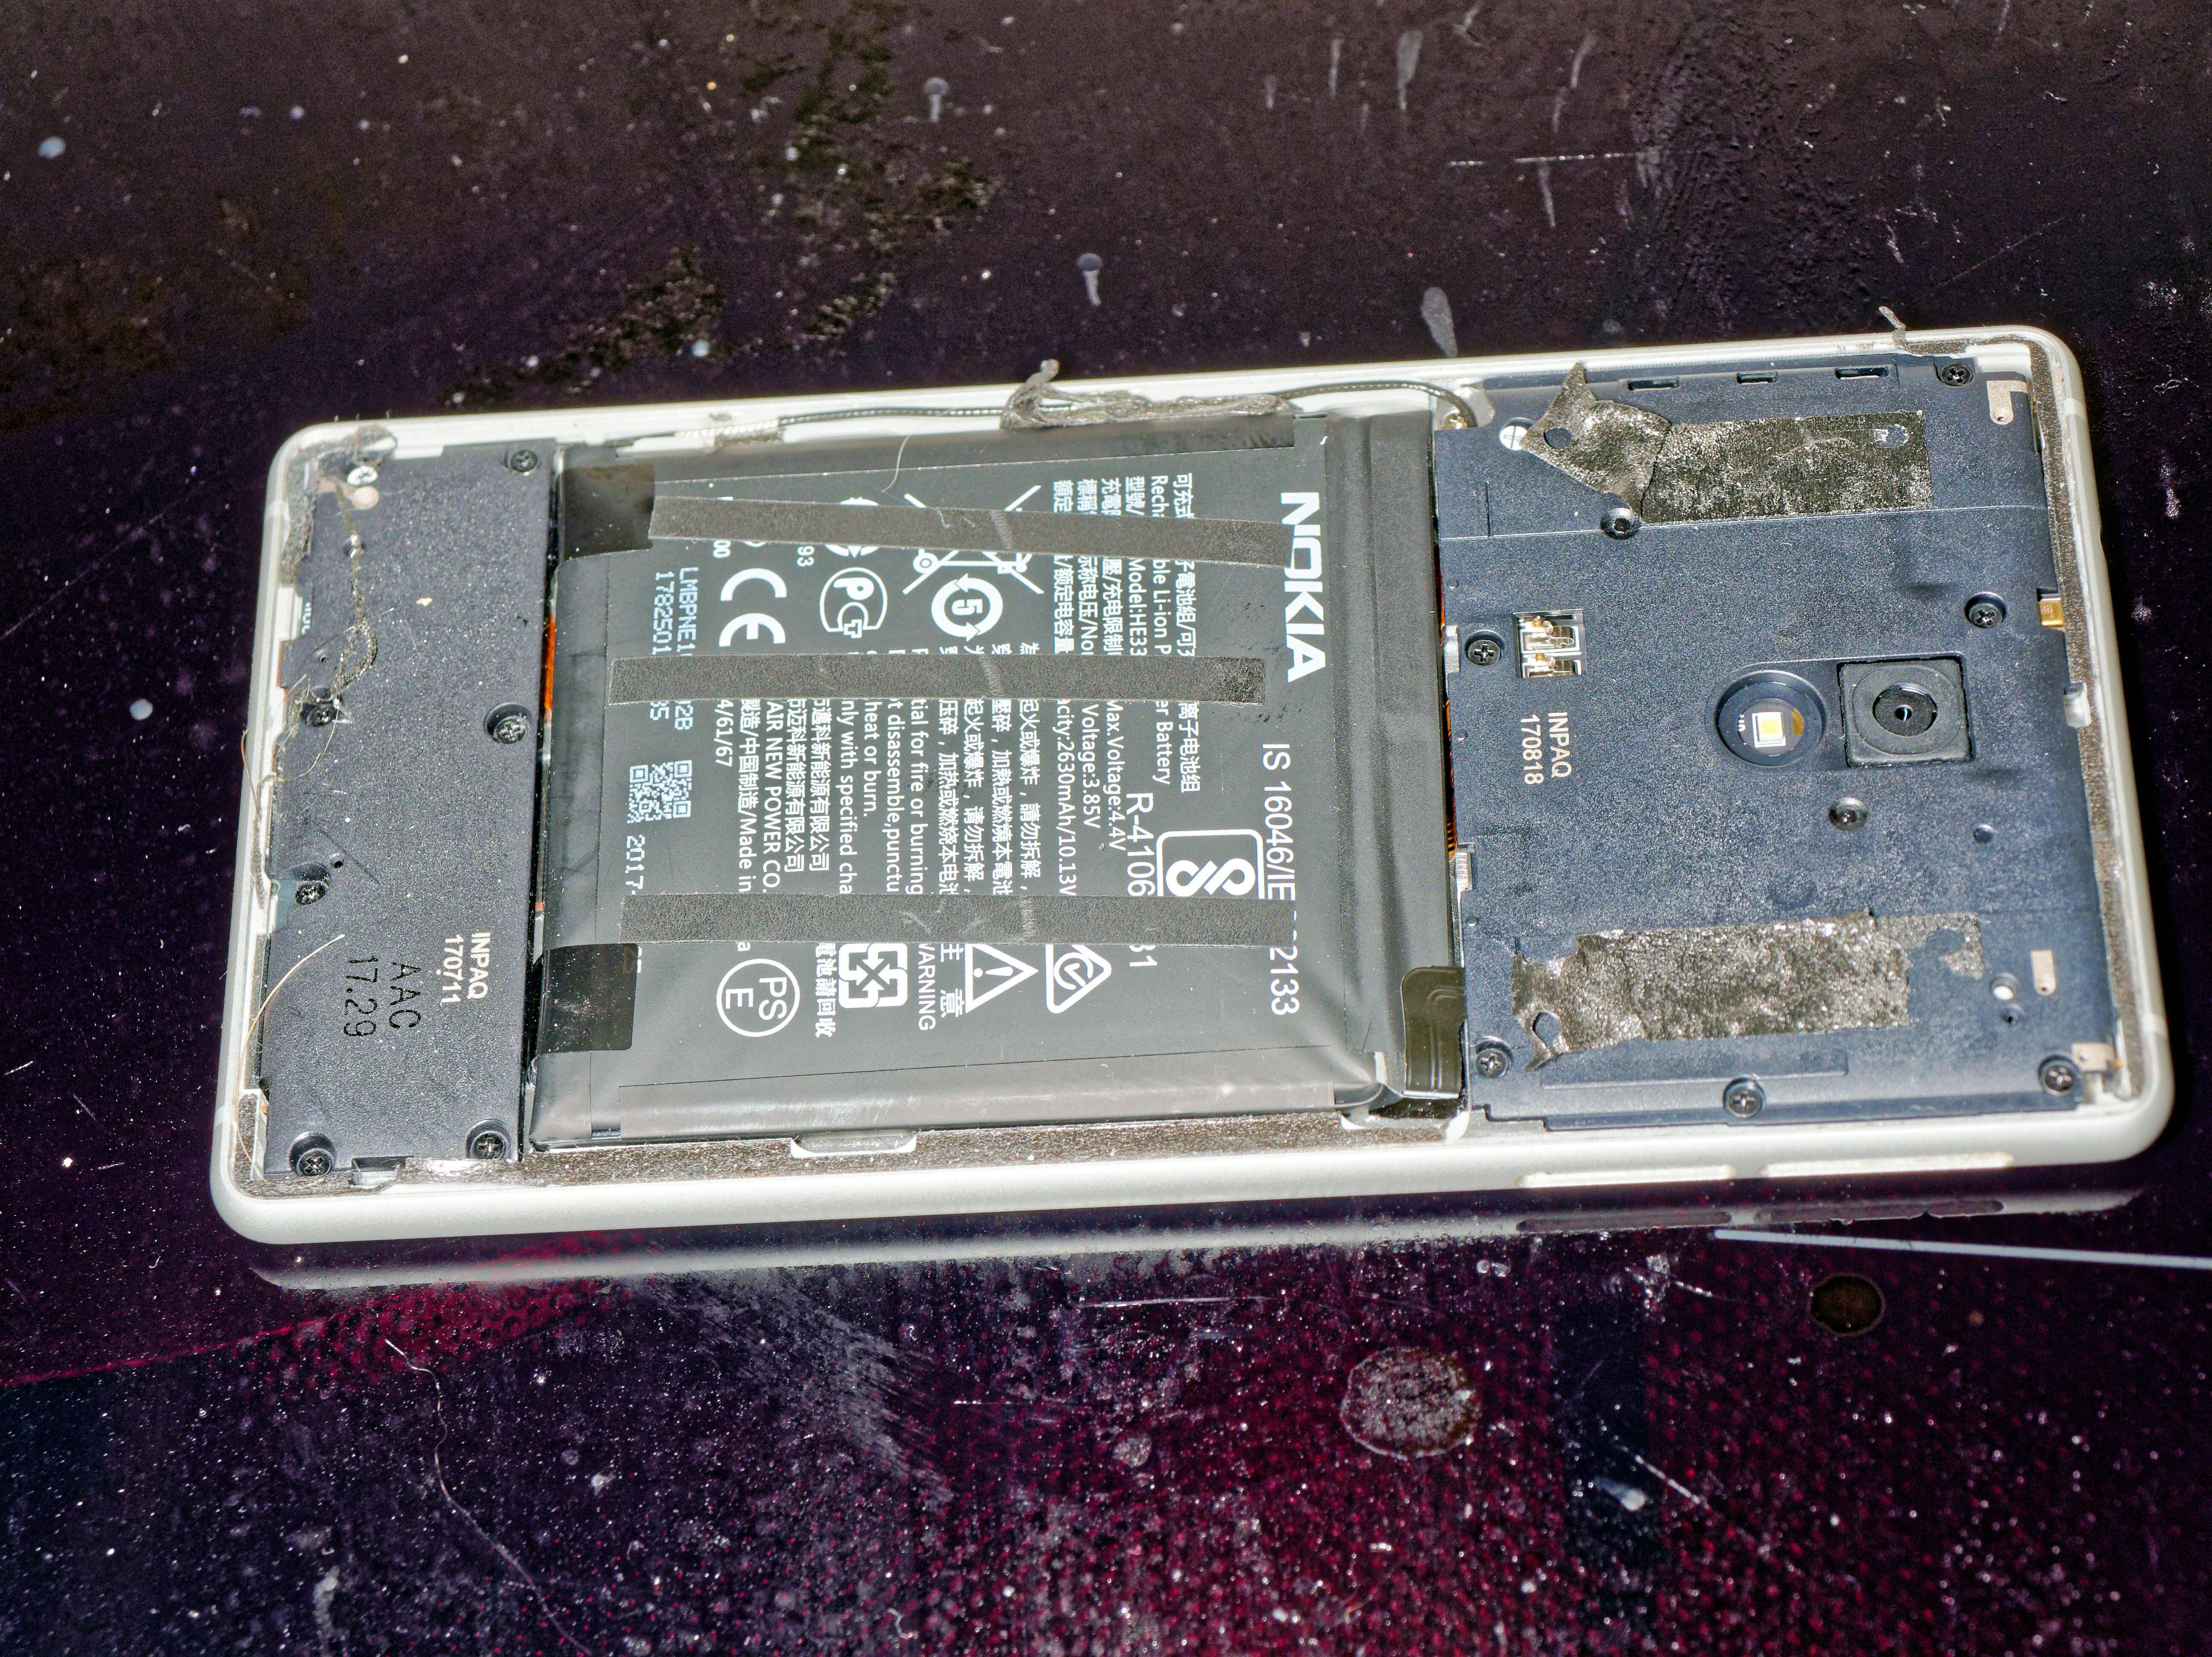 This should be Nokia-3-3.jpeg.  Is it missing?